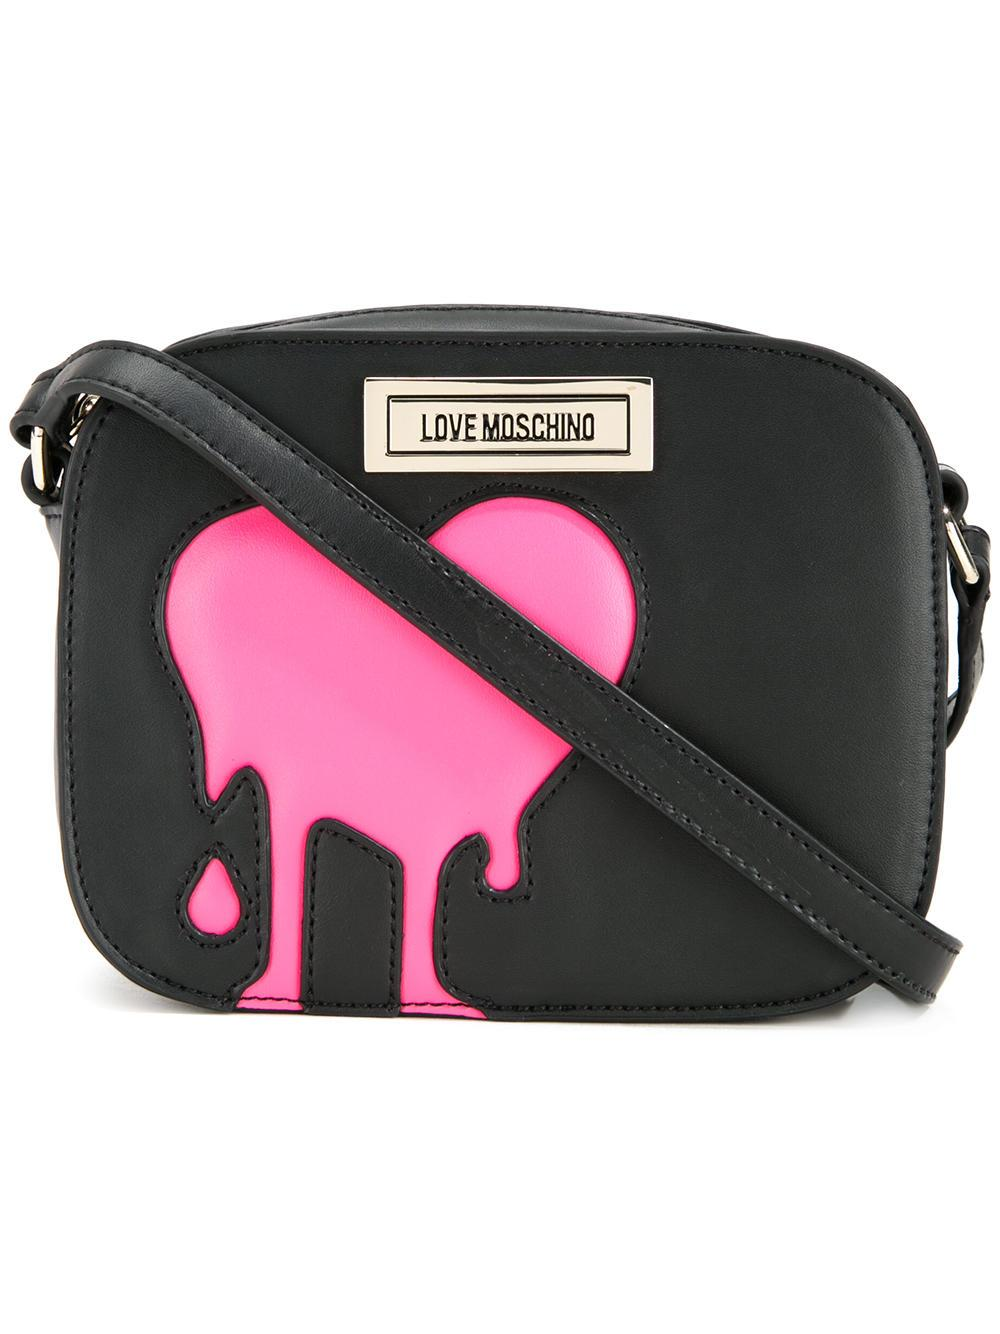 e6257d53f874 Lyst - Love Moschino Melted Heart Crossbody Bag in Black